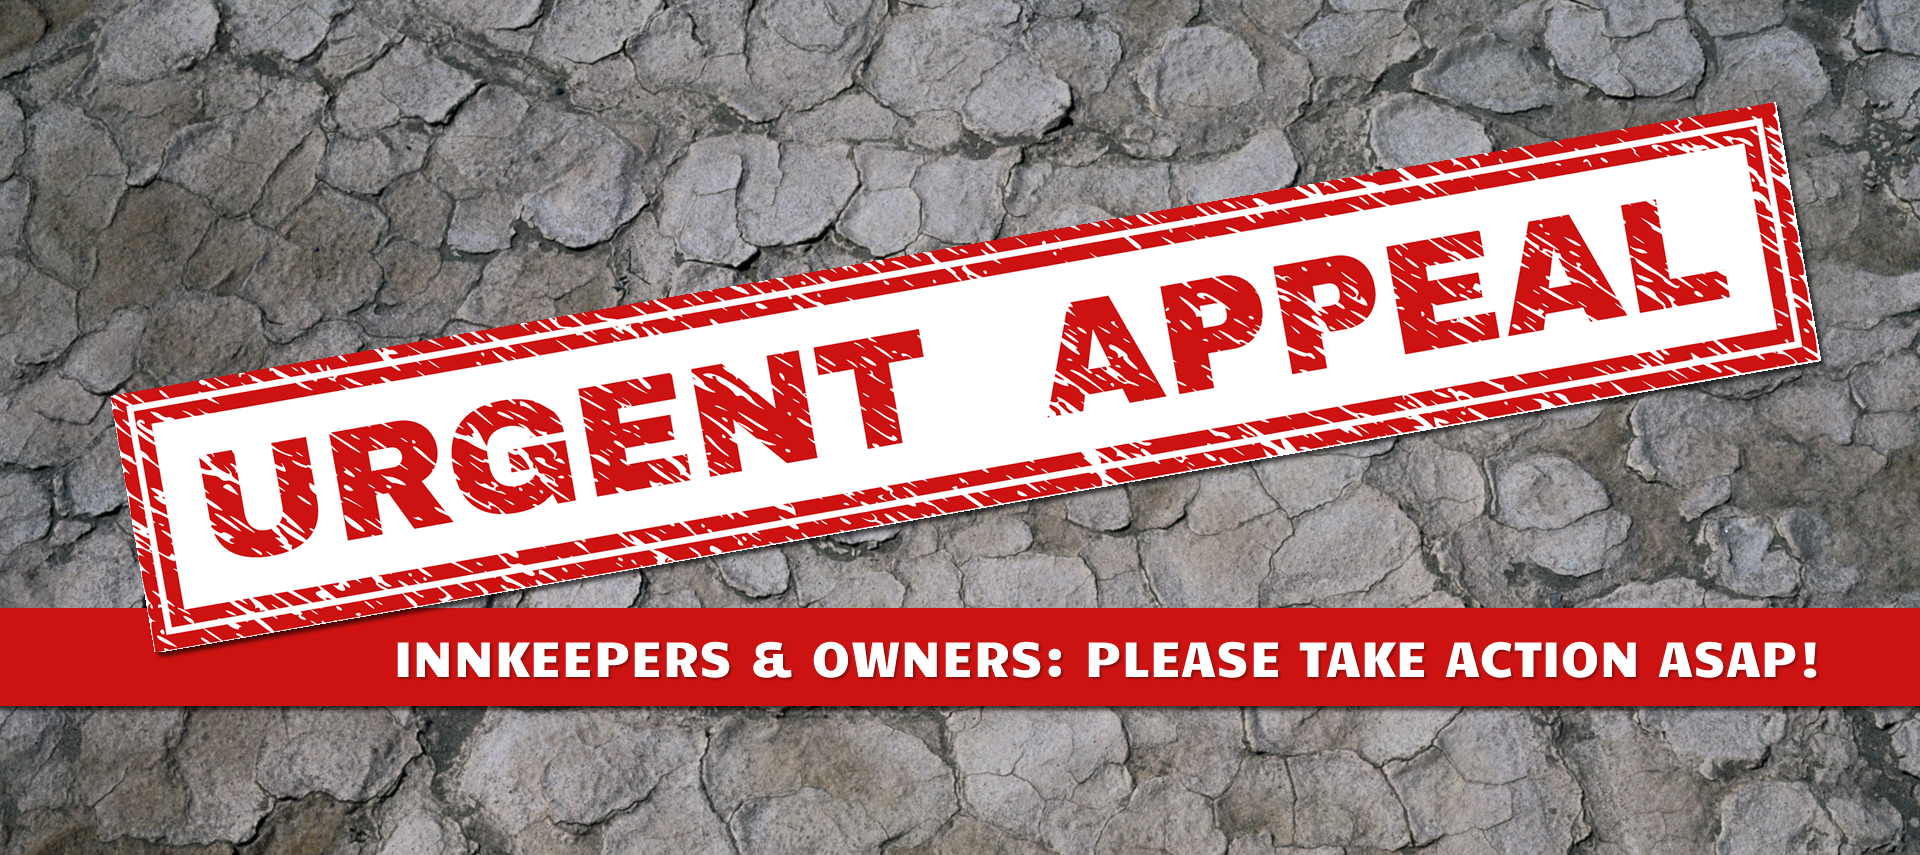 Red Stamp Urgent Appeal on Broken Ground